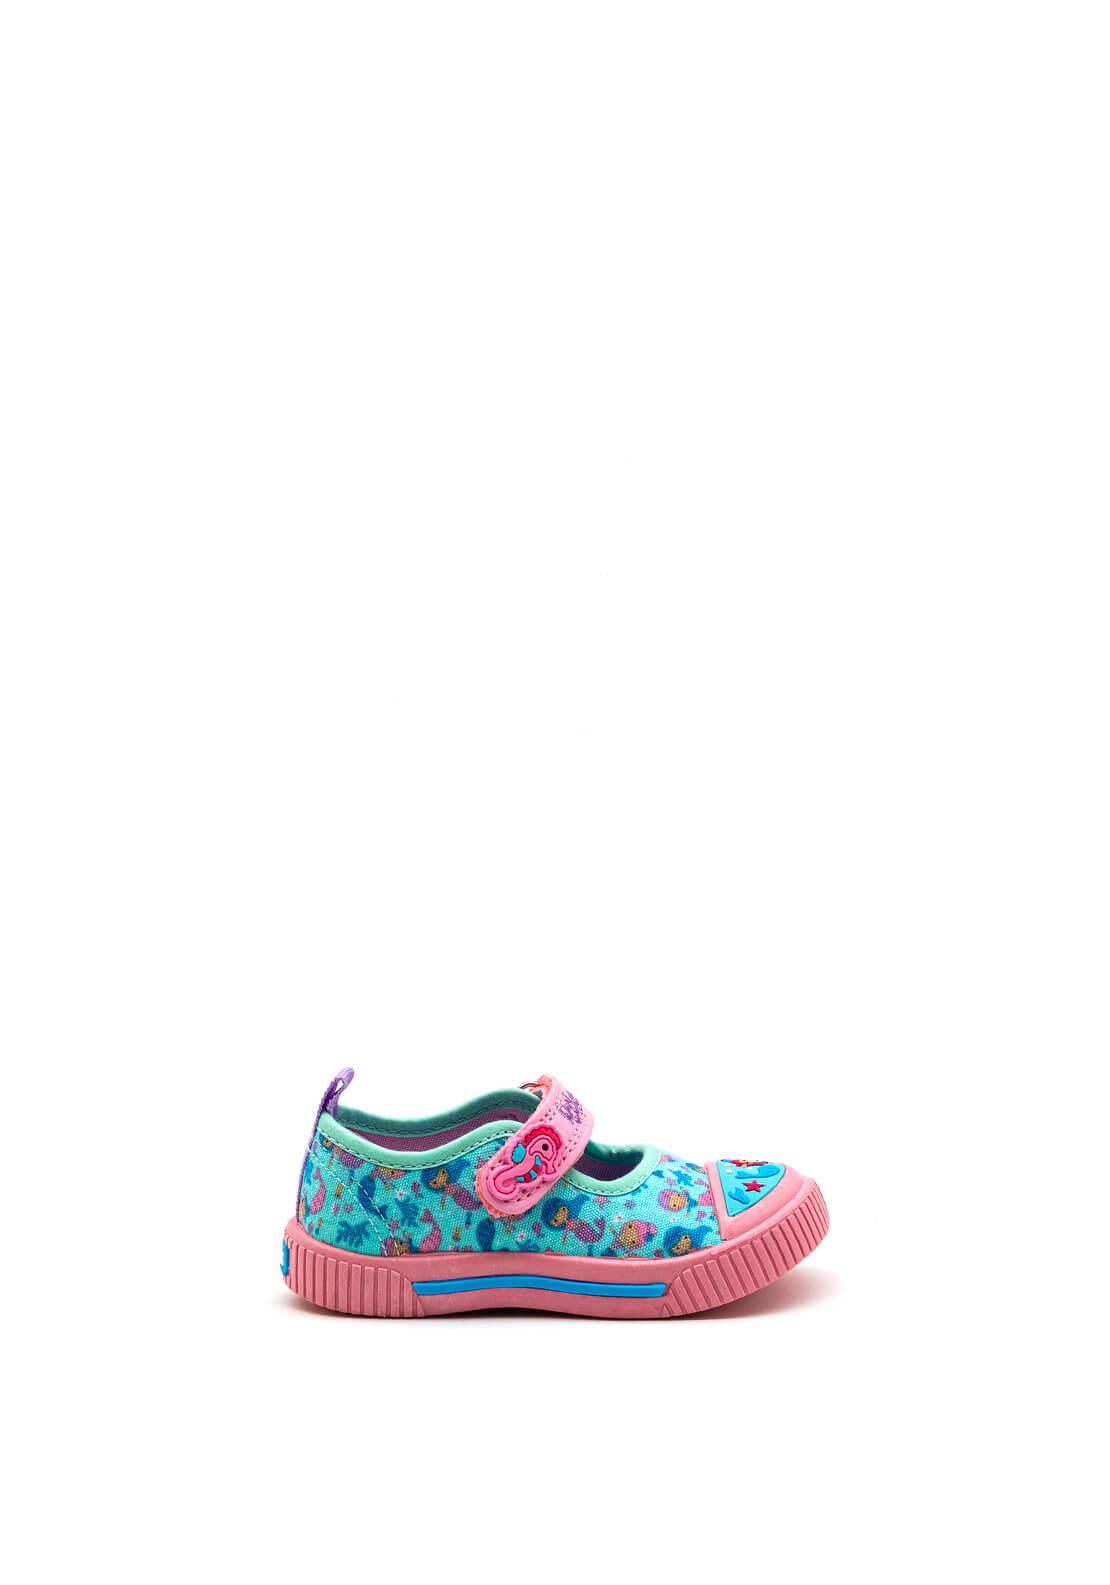 Podlers Baby Girls Mermaid Shoes, Blue Mix